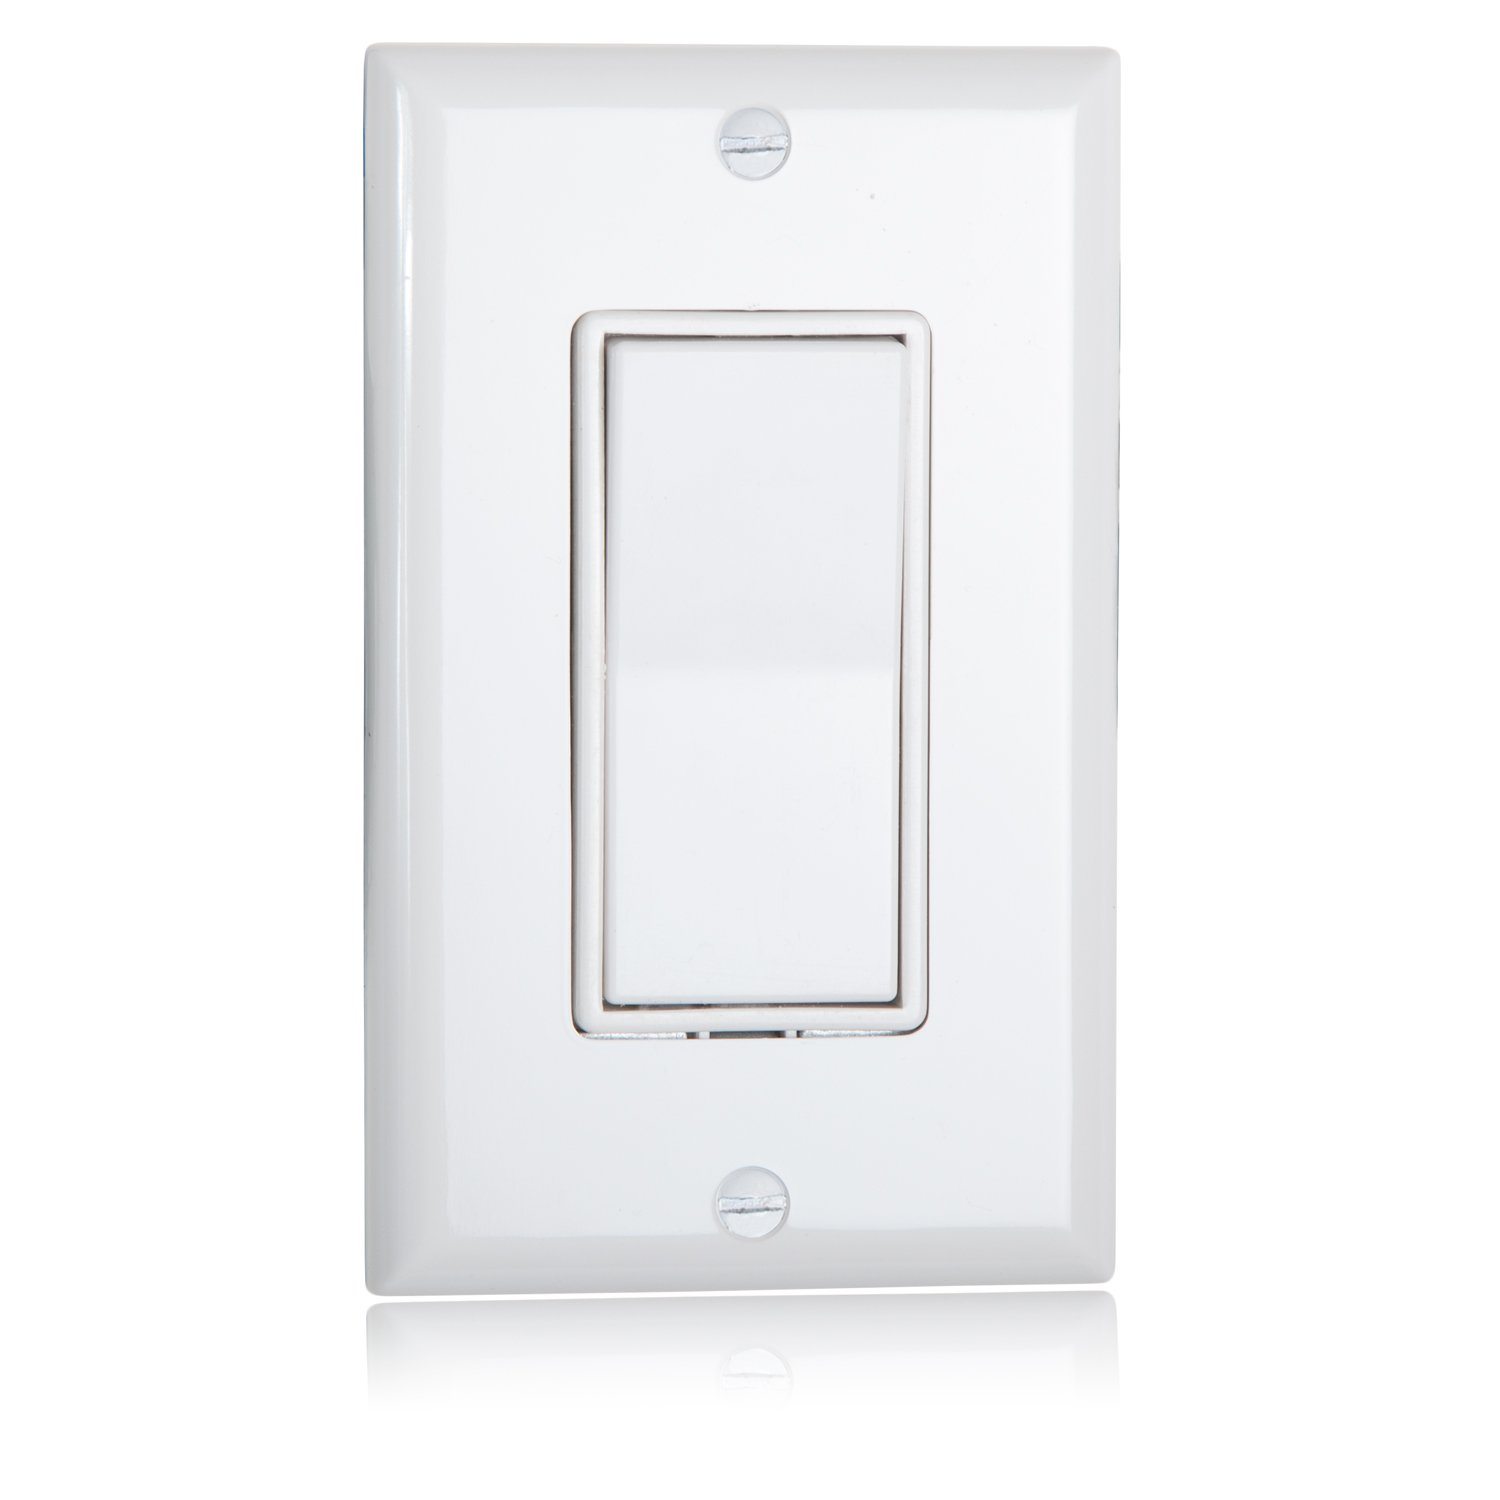 Pack of 10 Maxxima 3 Way Decorative Wall Switch On//Off White 15A Rocker Light Switch Wall Plates Included